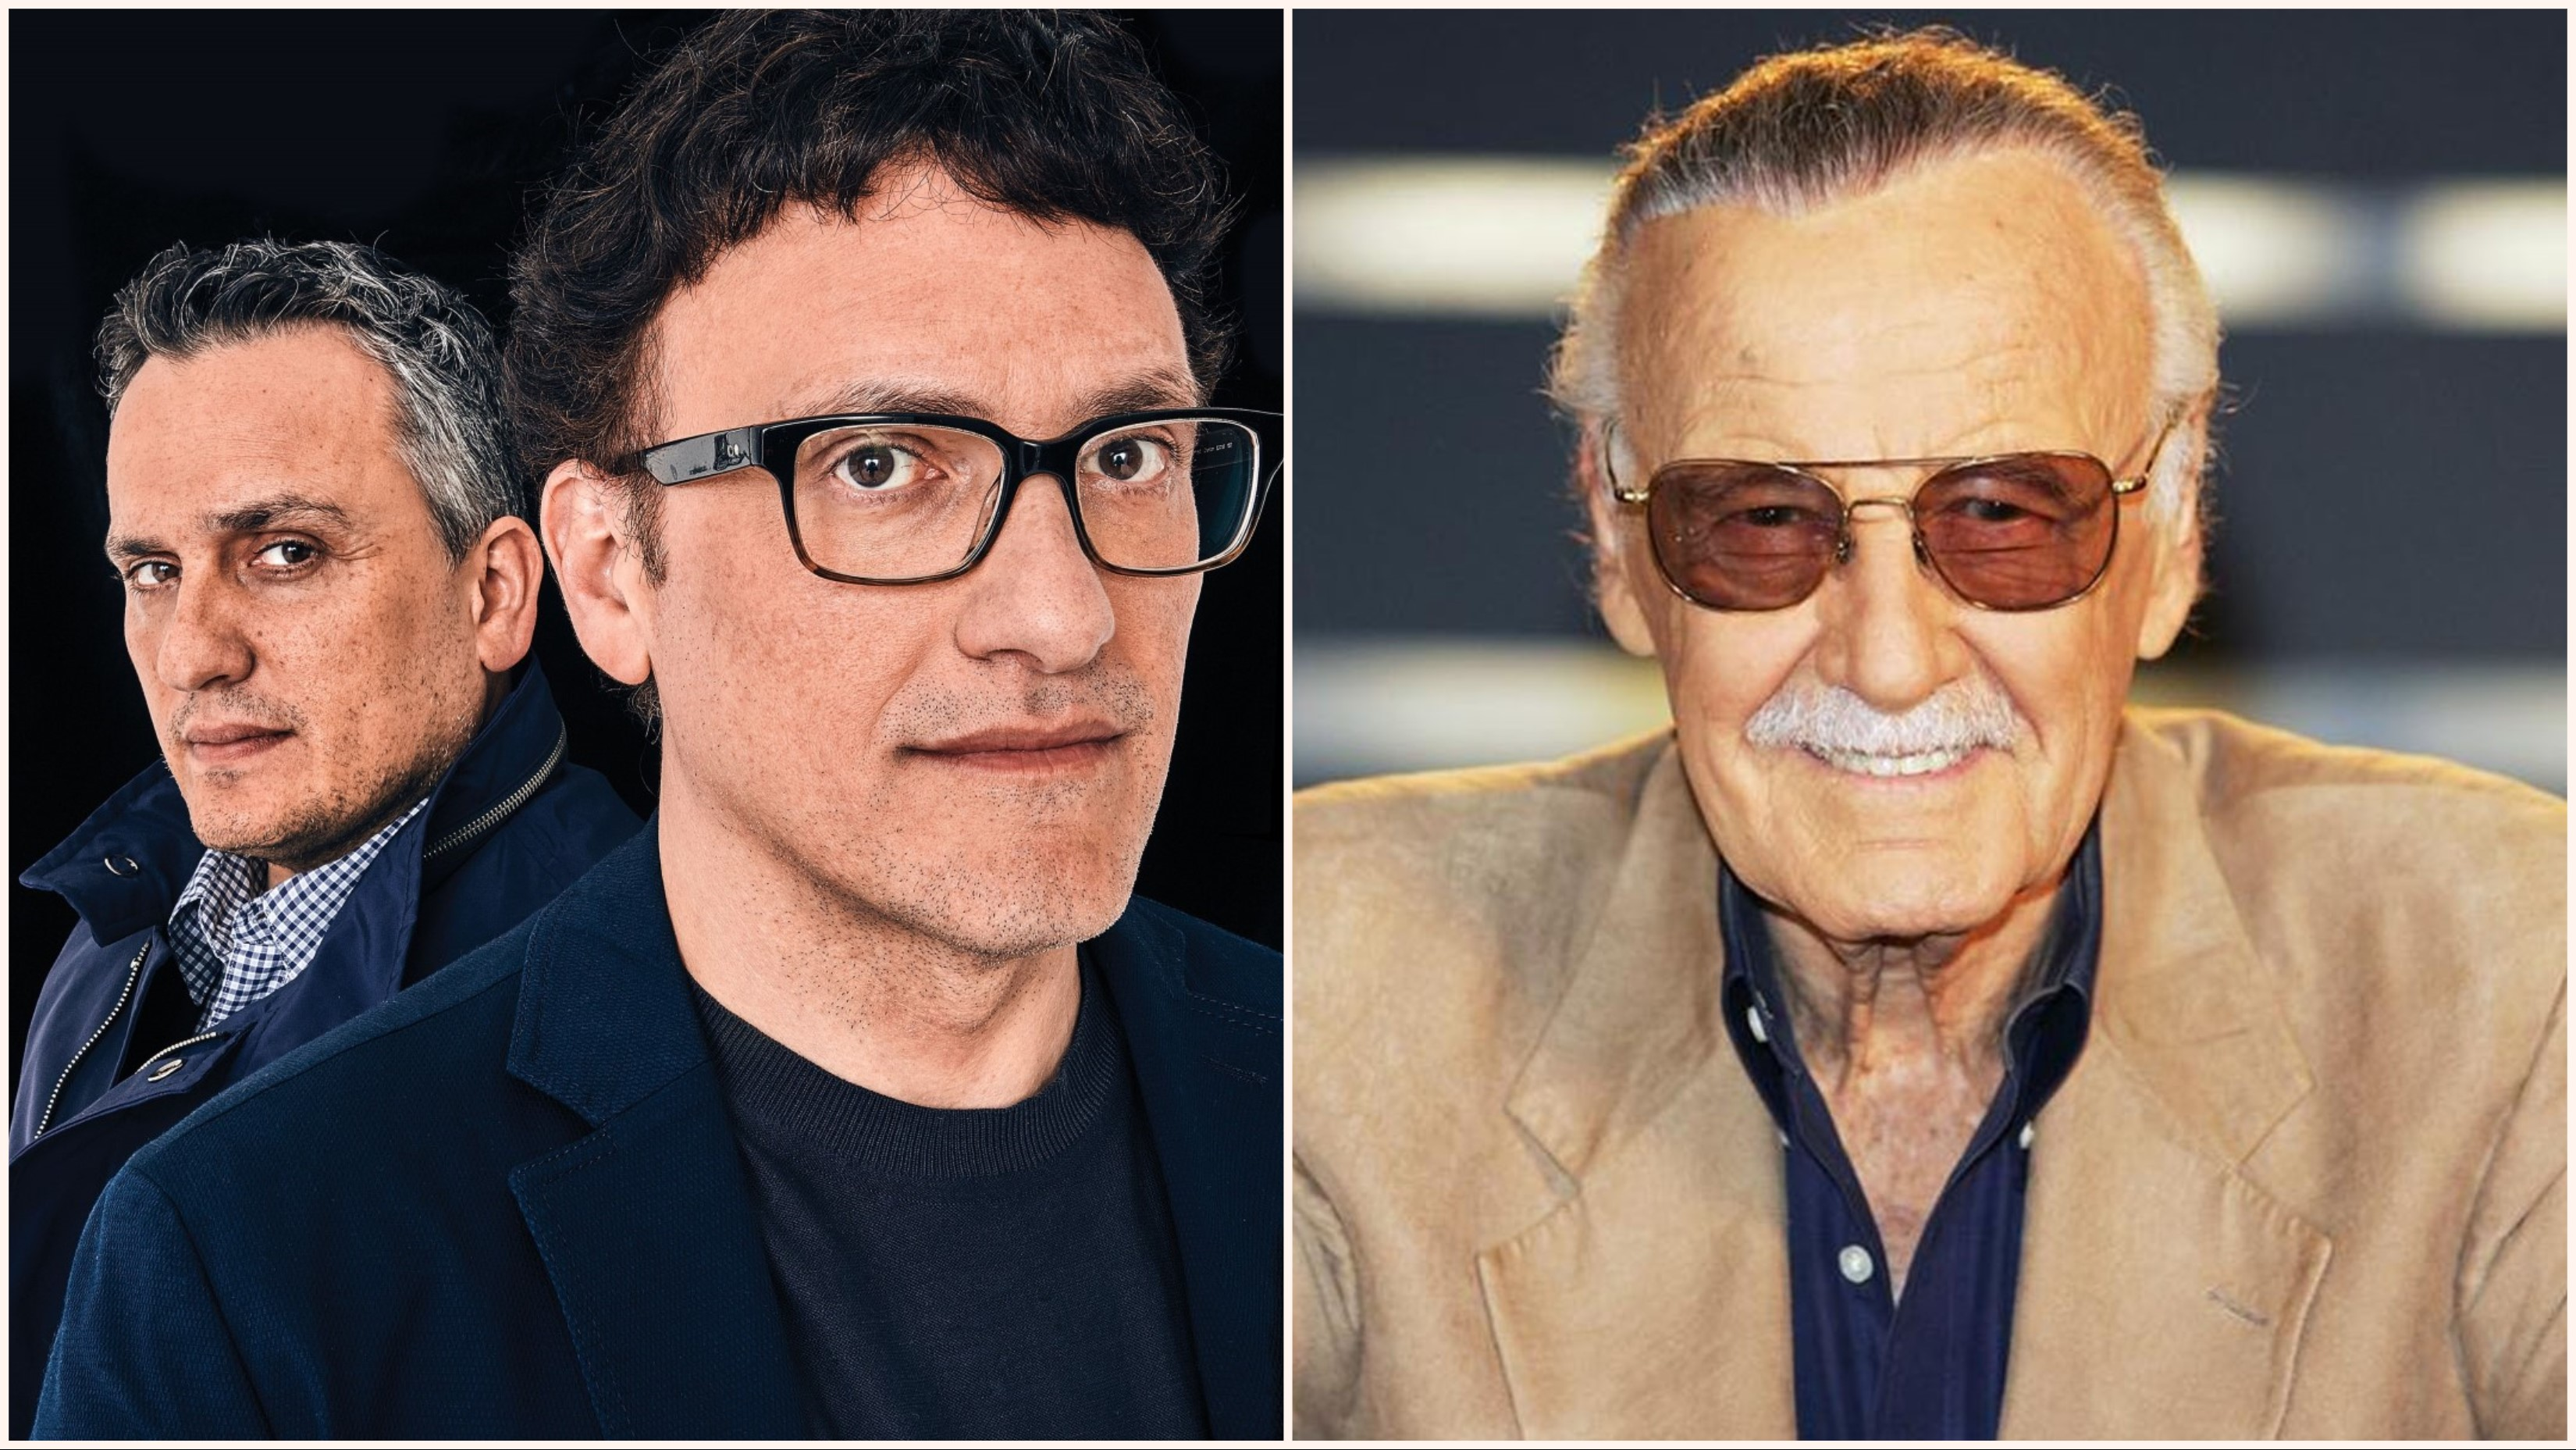 'Avengers Endgame' directors Rusoo Brothers Reportedly Working on Stan Lee Documentary